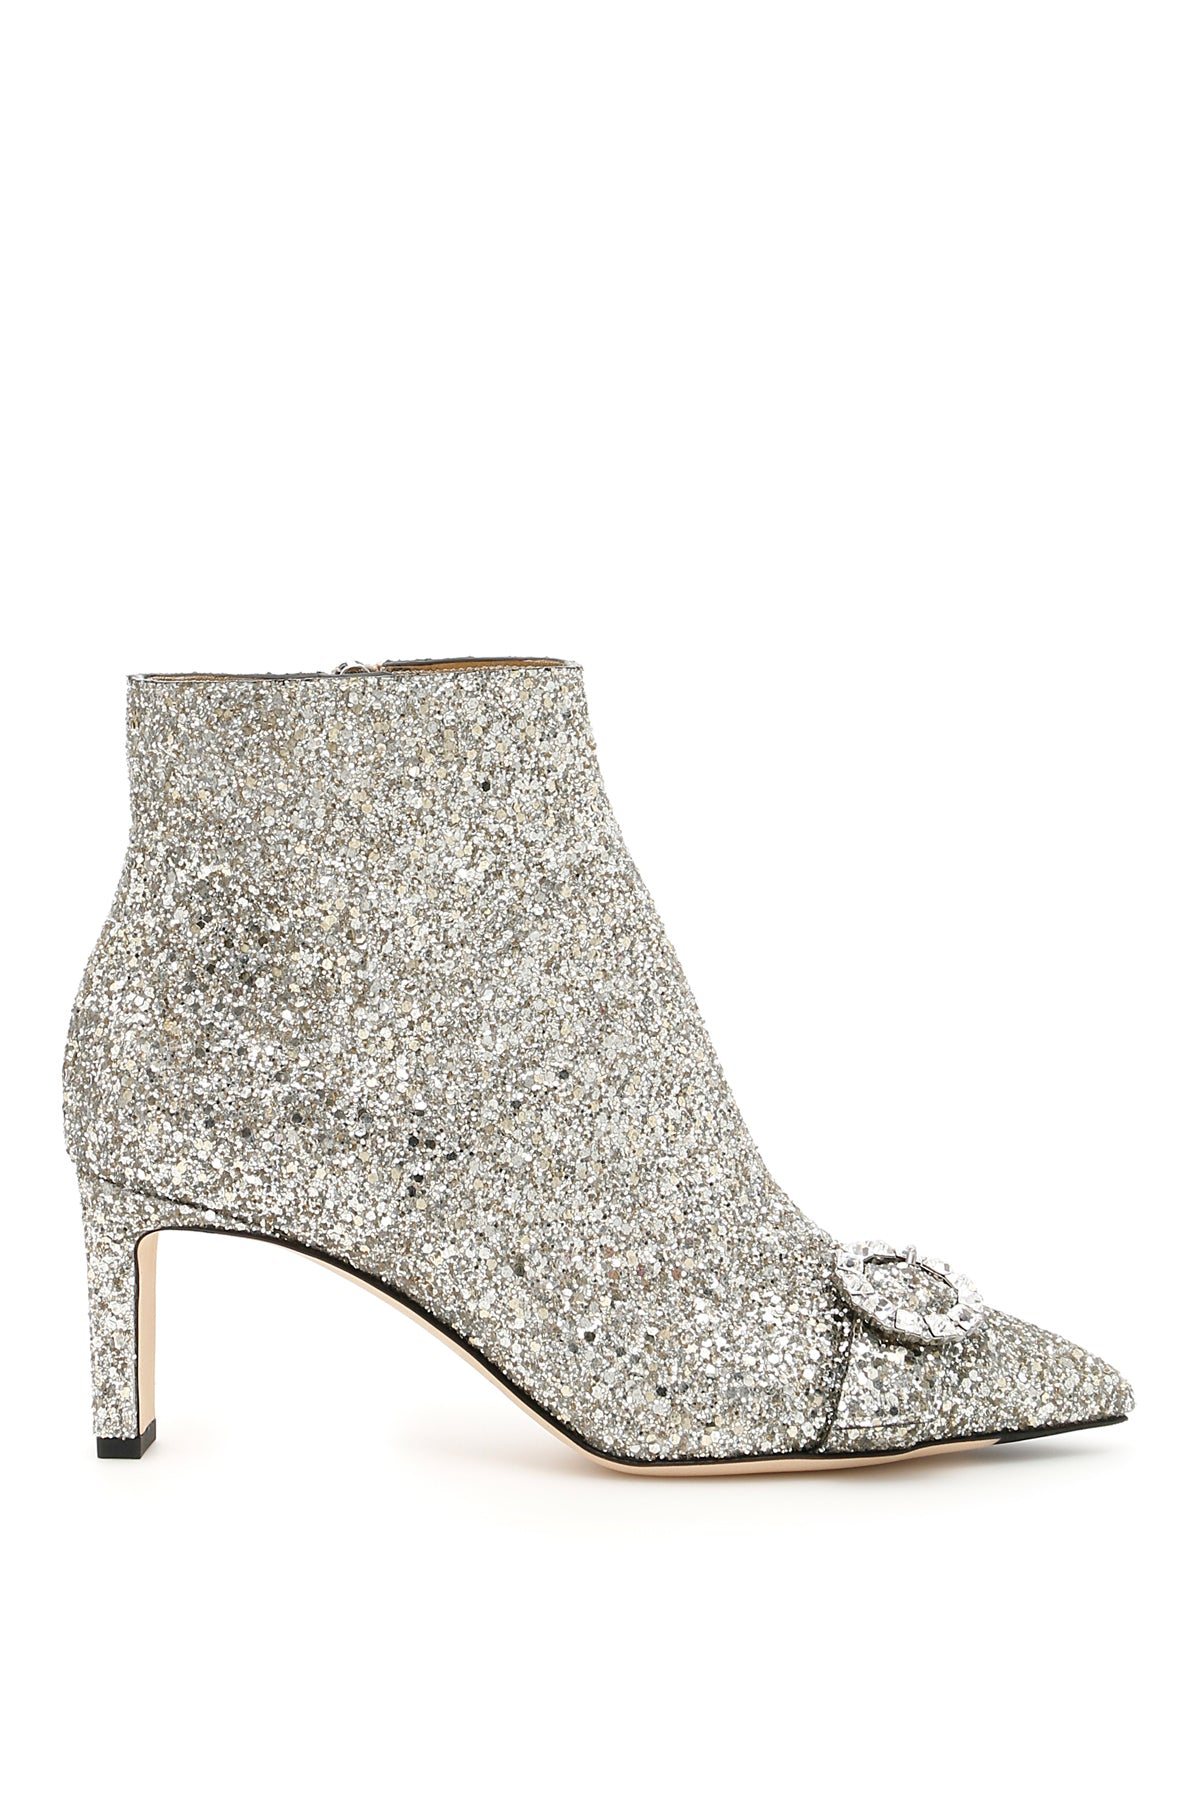 JIMMY CHOO HANOVER 65 GLITTER ANKLE BOOTS